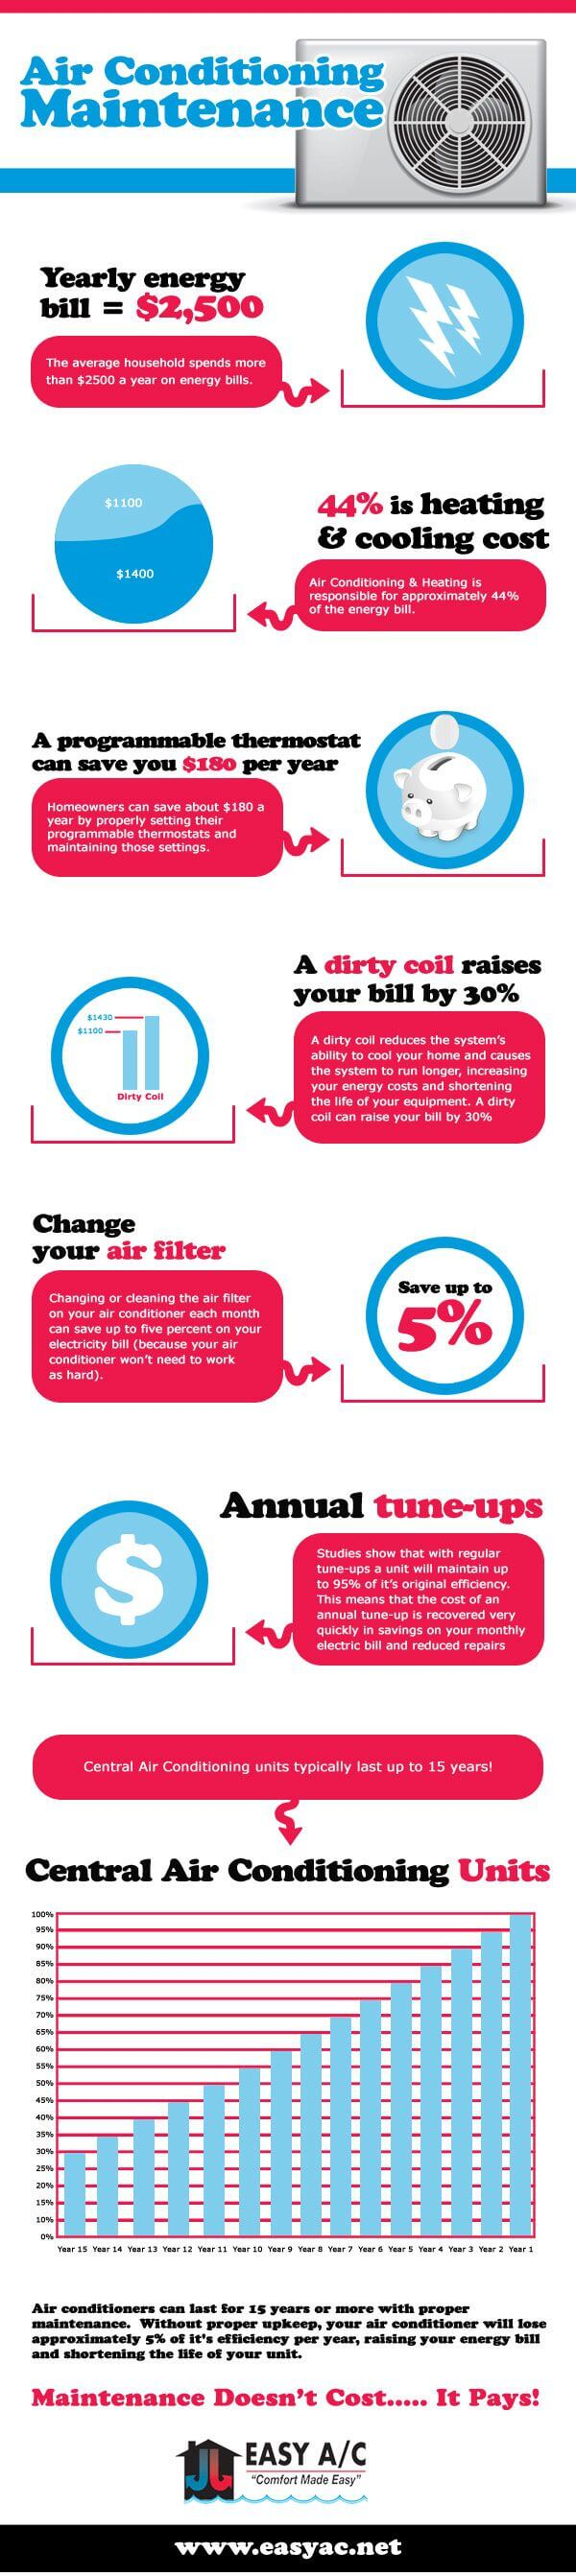 Howard Air - Improtance of Maintaining Air Conditioner Infographic